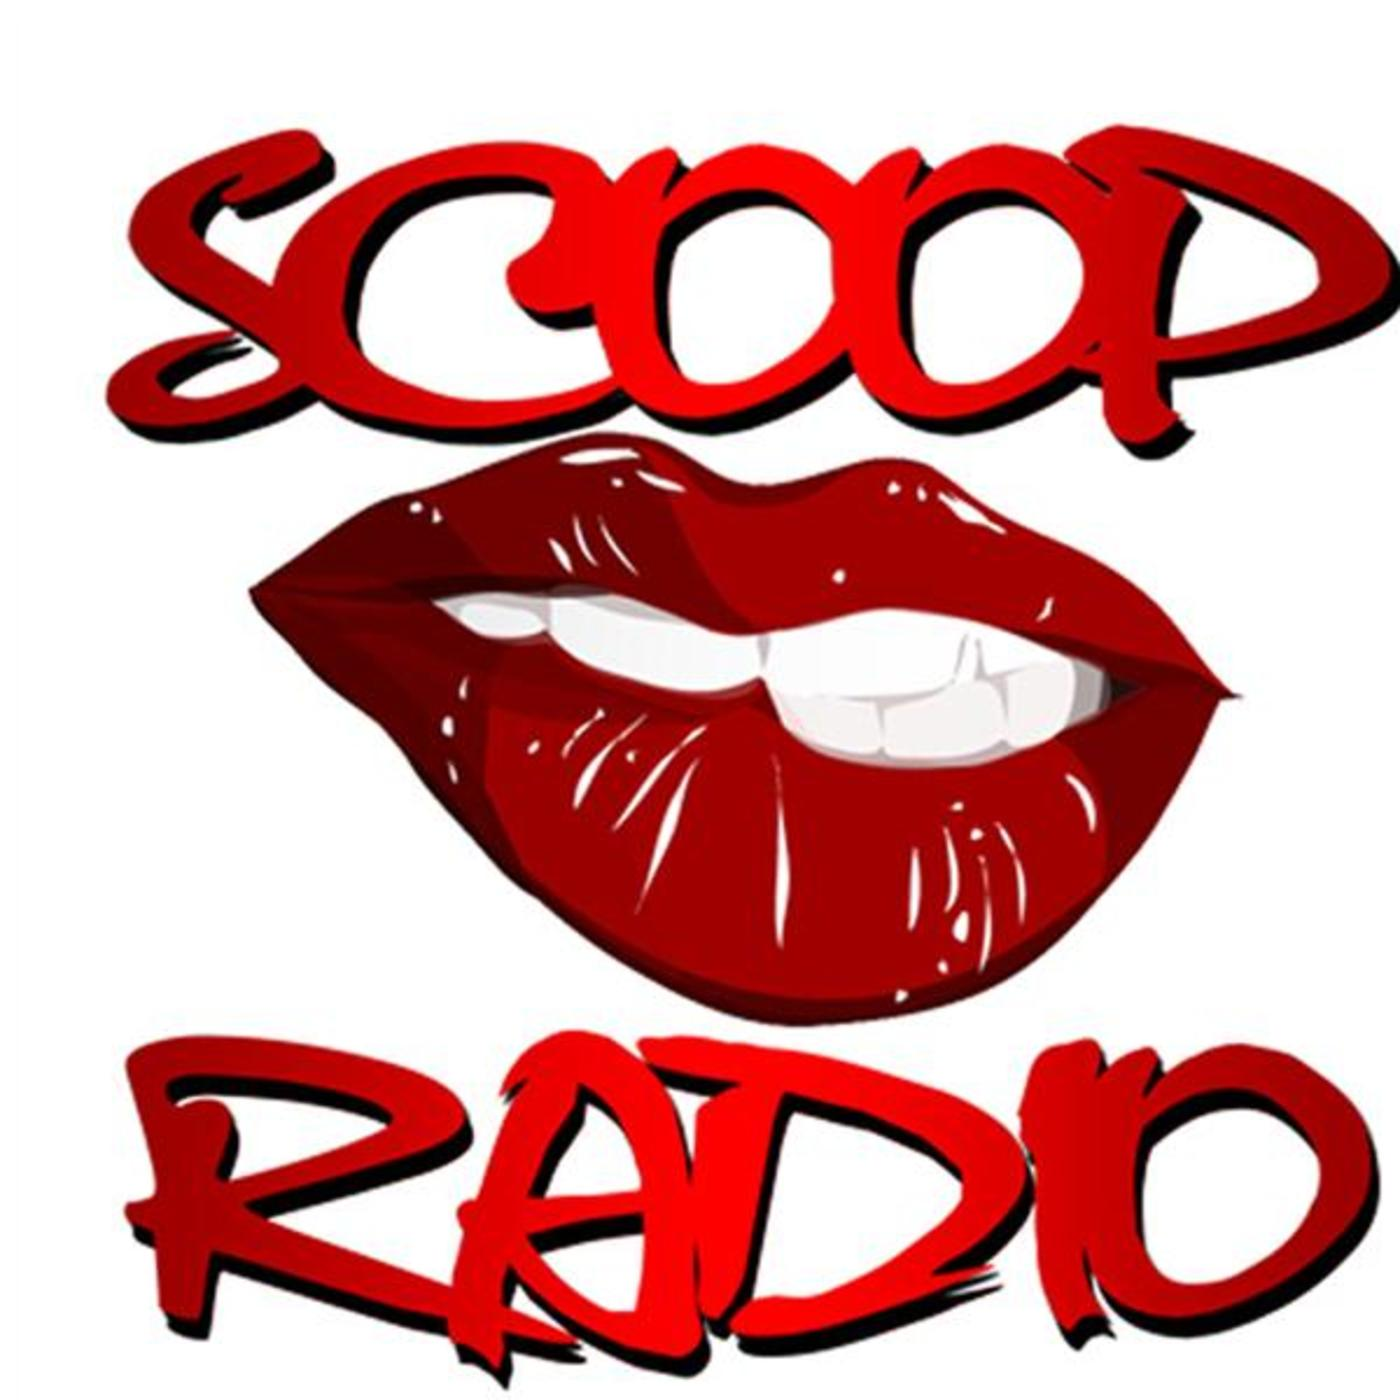 #ScoopRadio